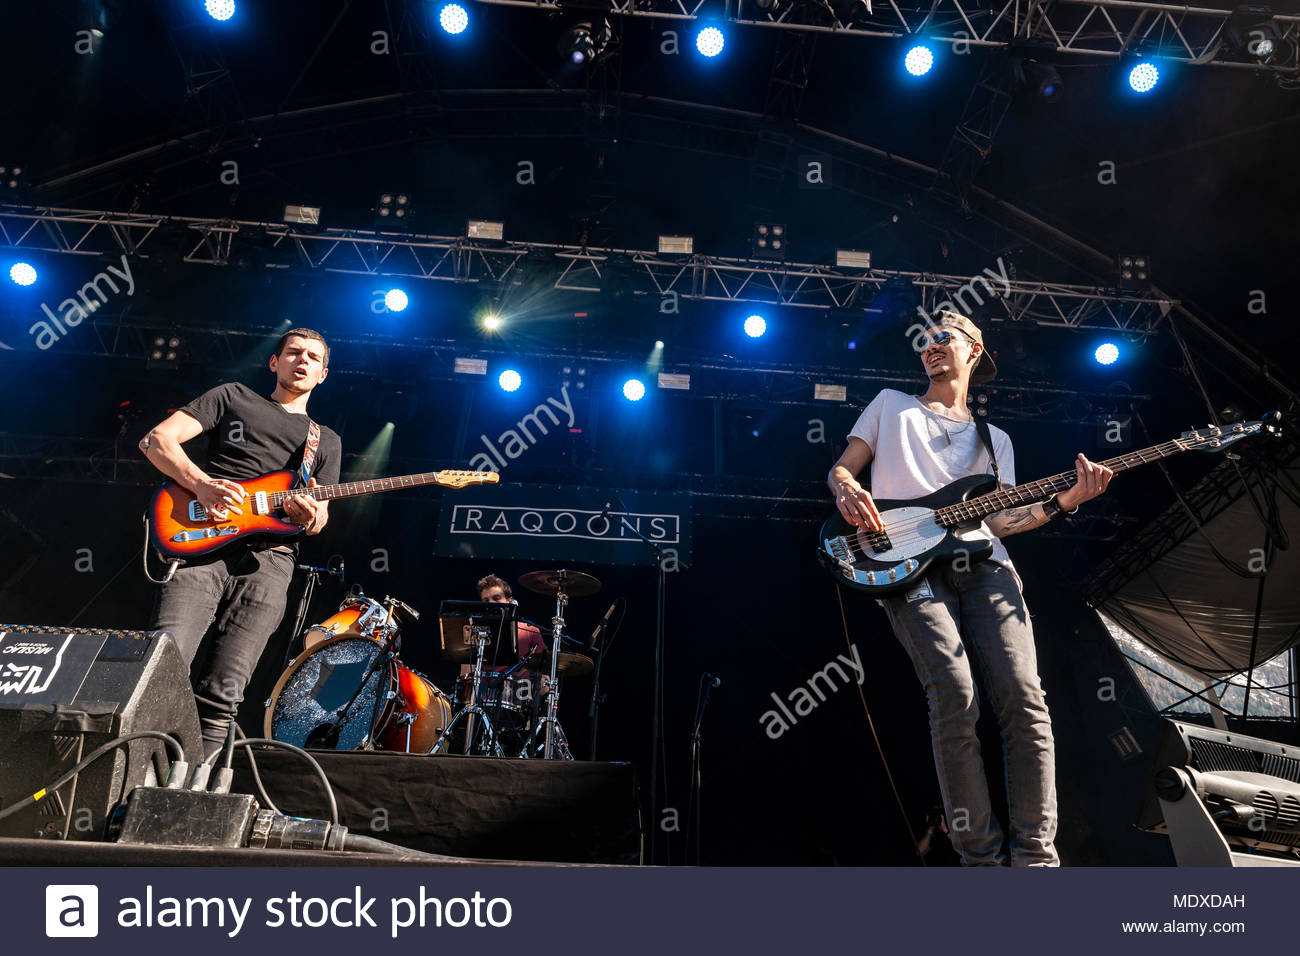 Chamonix, France. 20th April 2018. Raqoons performing live at the first edition of MUSILAC Mont-Blanc music festival in Chamonix (France) - 20 April 2018 Credit: Olivier Parent/Alamy Live News - Stock Image